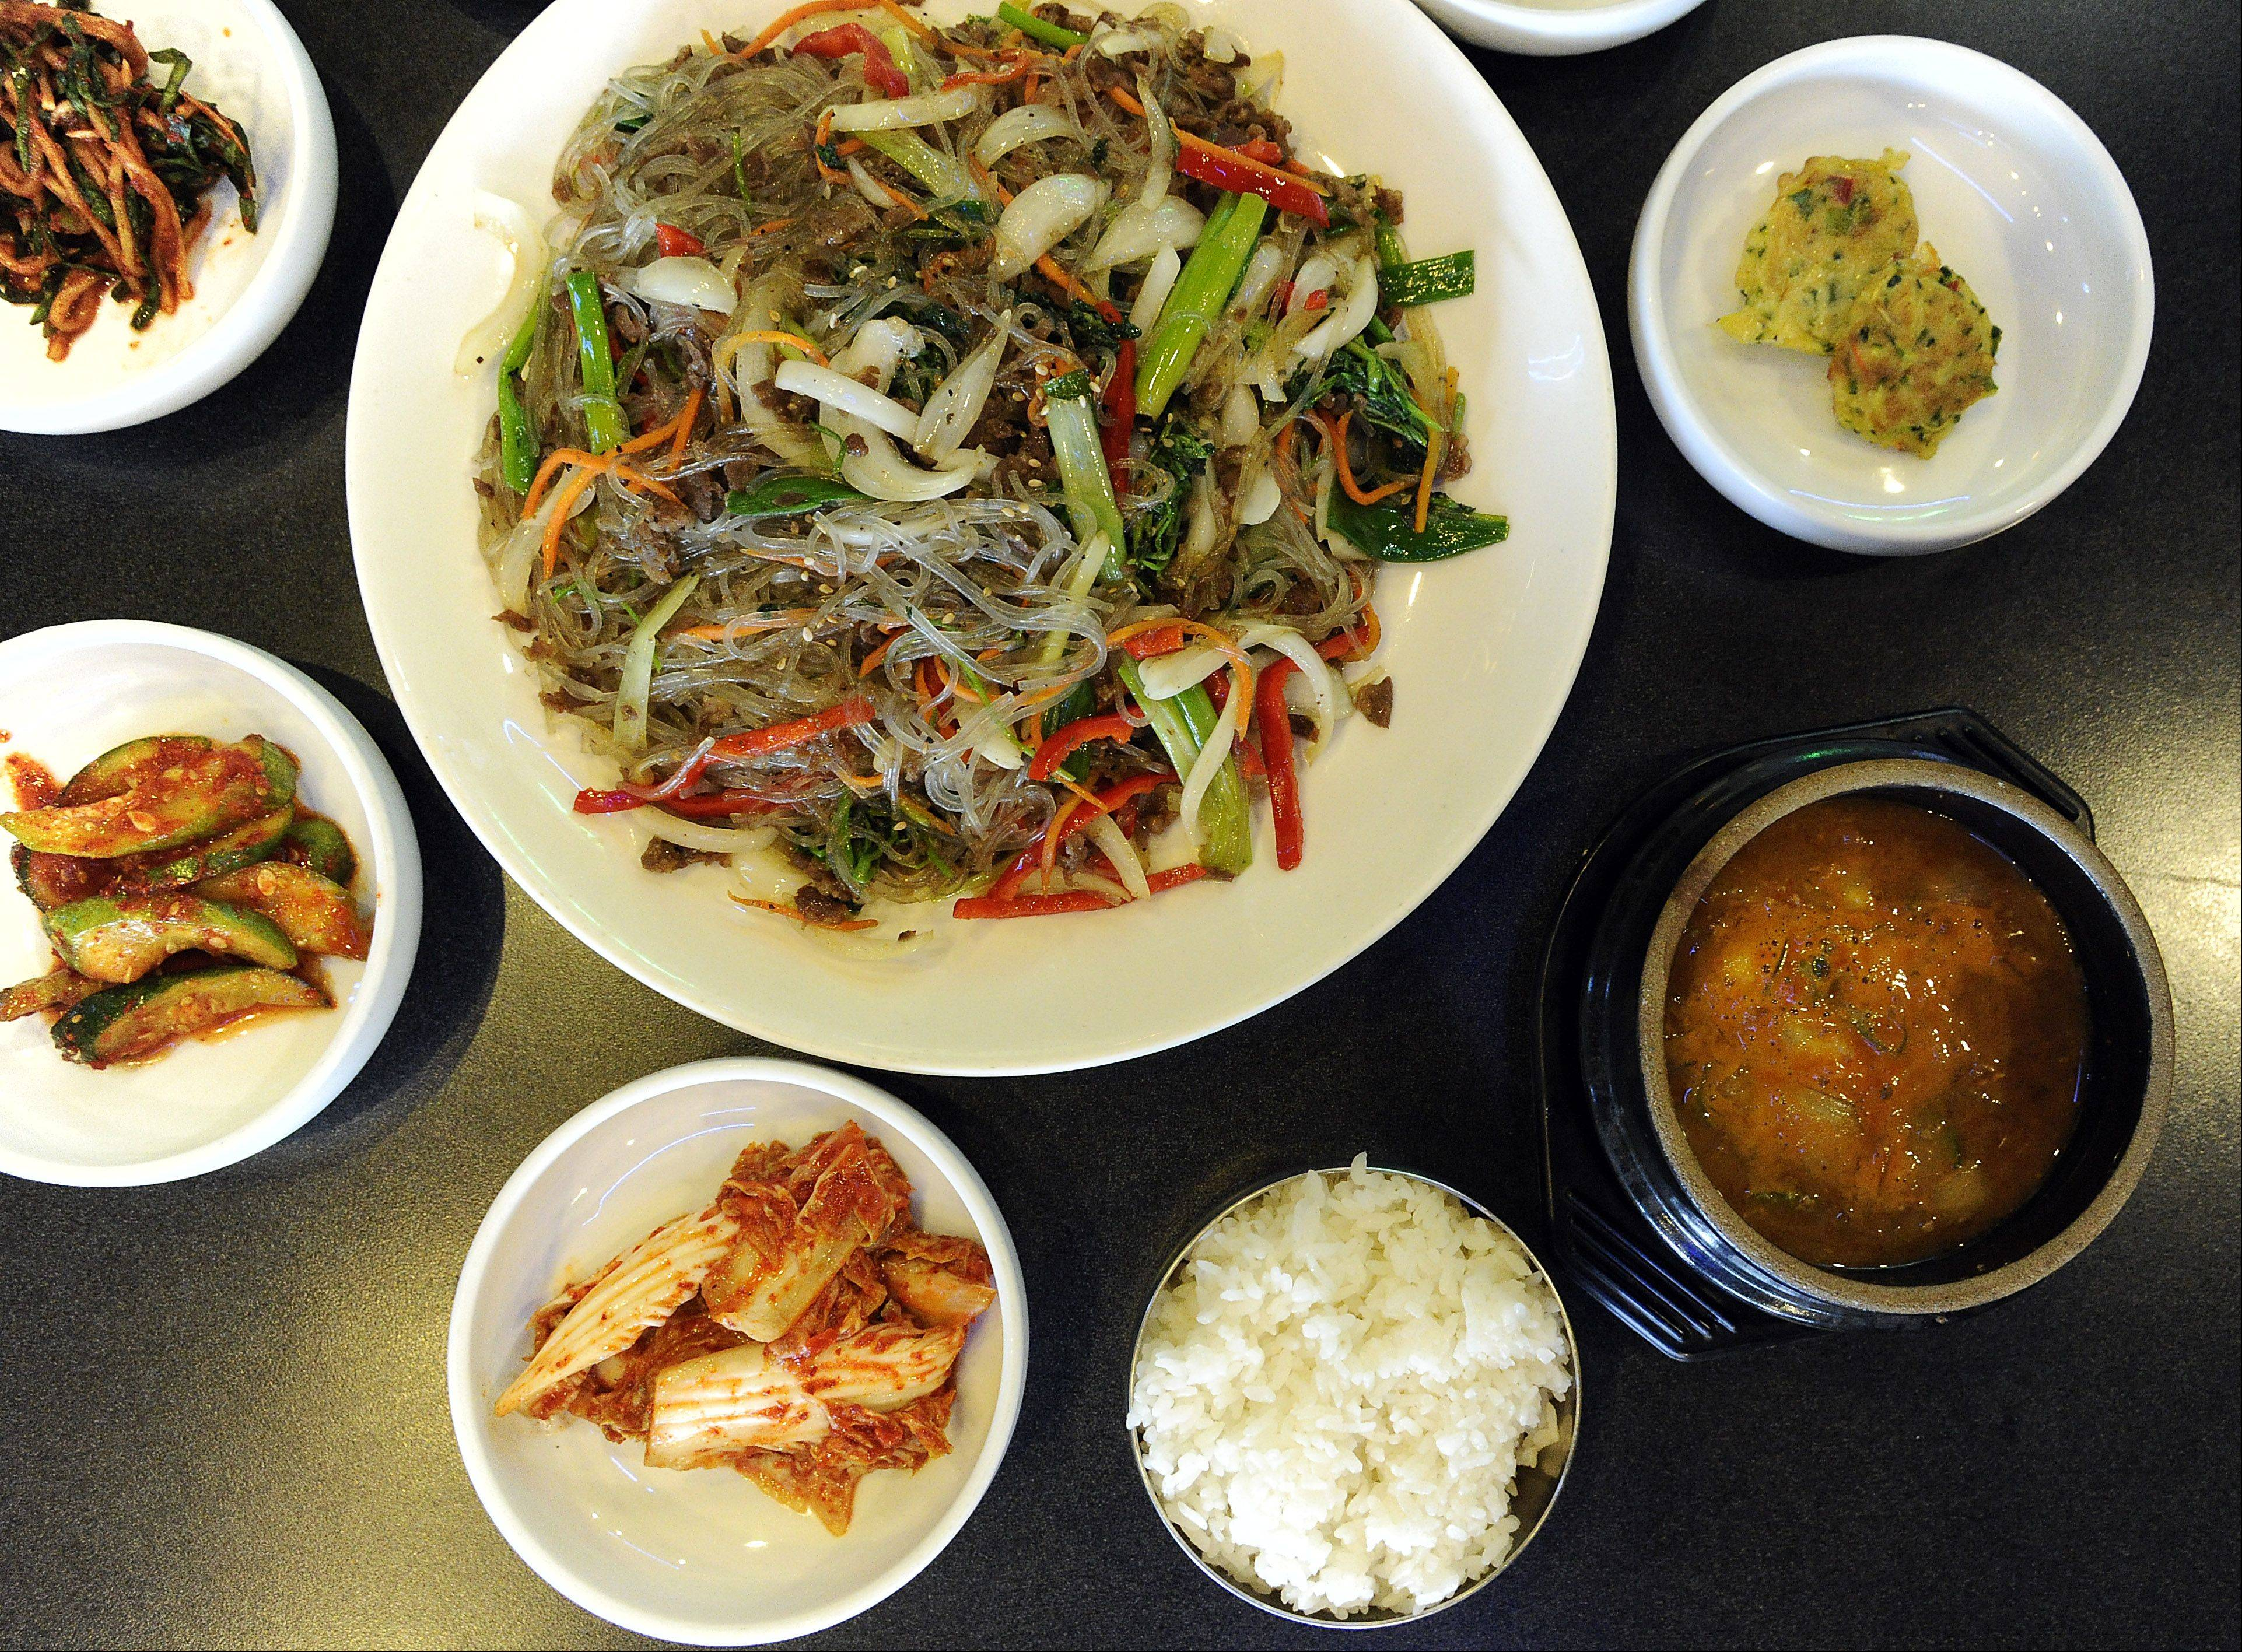 Jap Chae, vermicelli noodles with beef and vegetables, eases diners into the menu at Solliphana Korean BBQ in Schaumburg. Codfish head casserole appeals to more seasoned eaters.